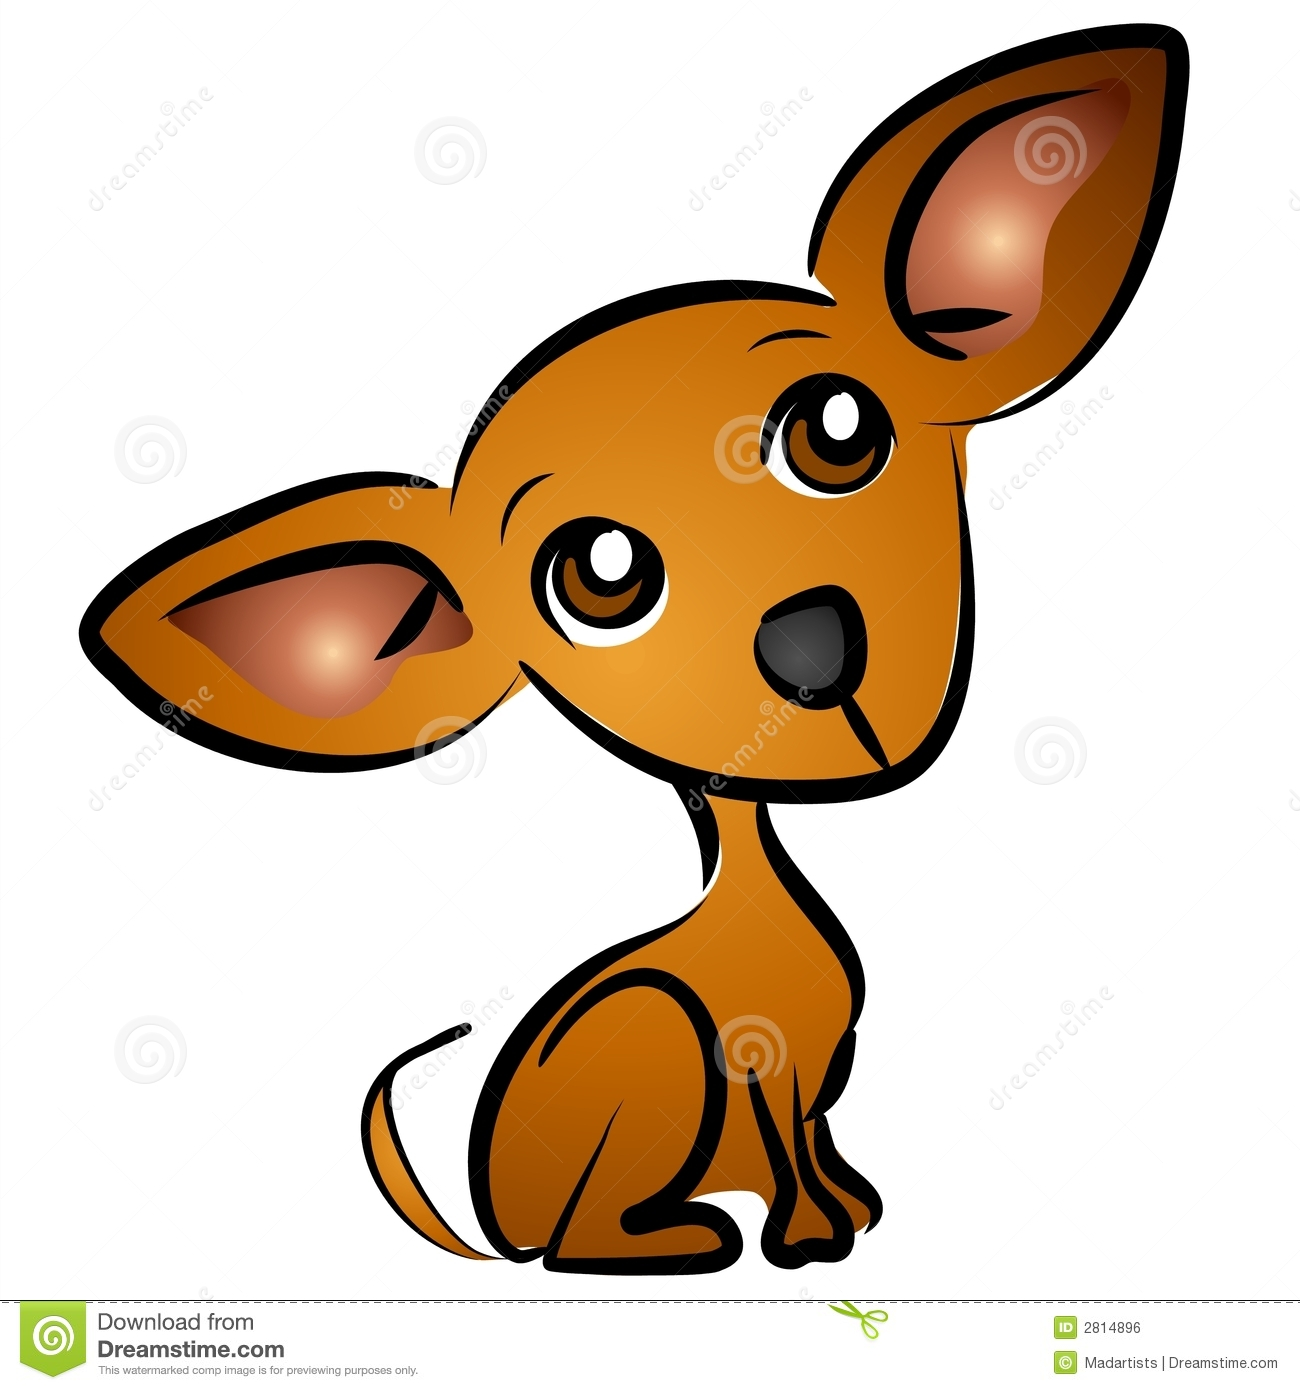 Cute Cartoon Dogs Clip Art